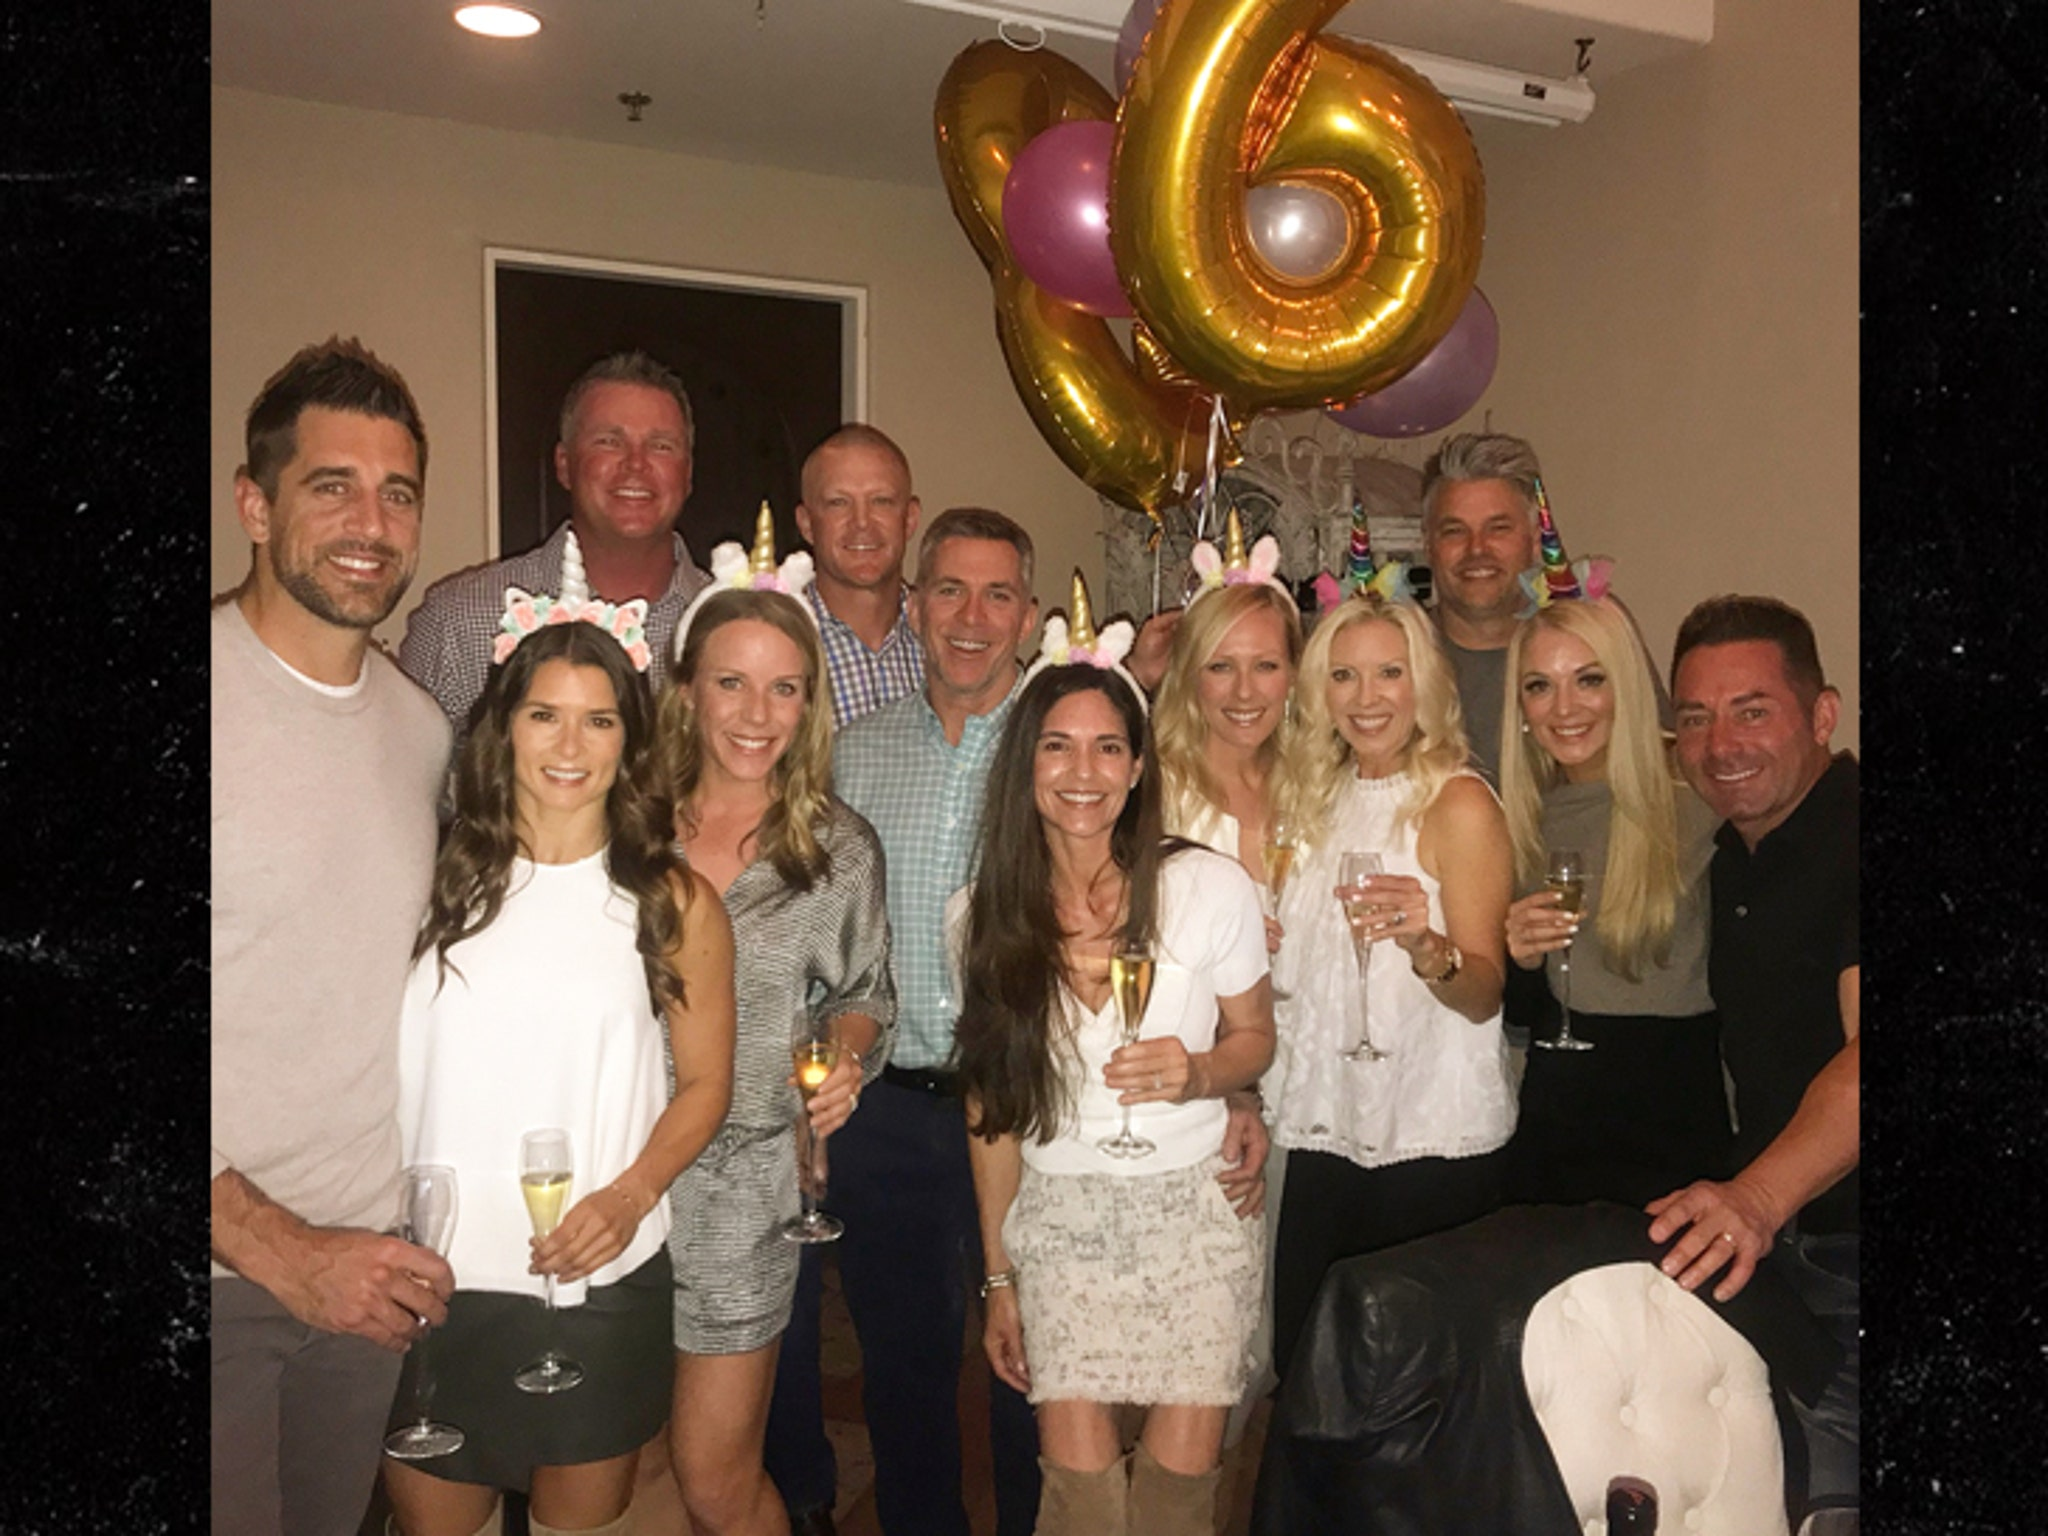 Danica Patrick Rings in 36th Birthday with Boyfriend Aaron Rodgers